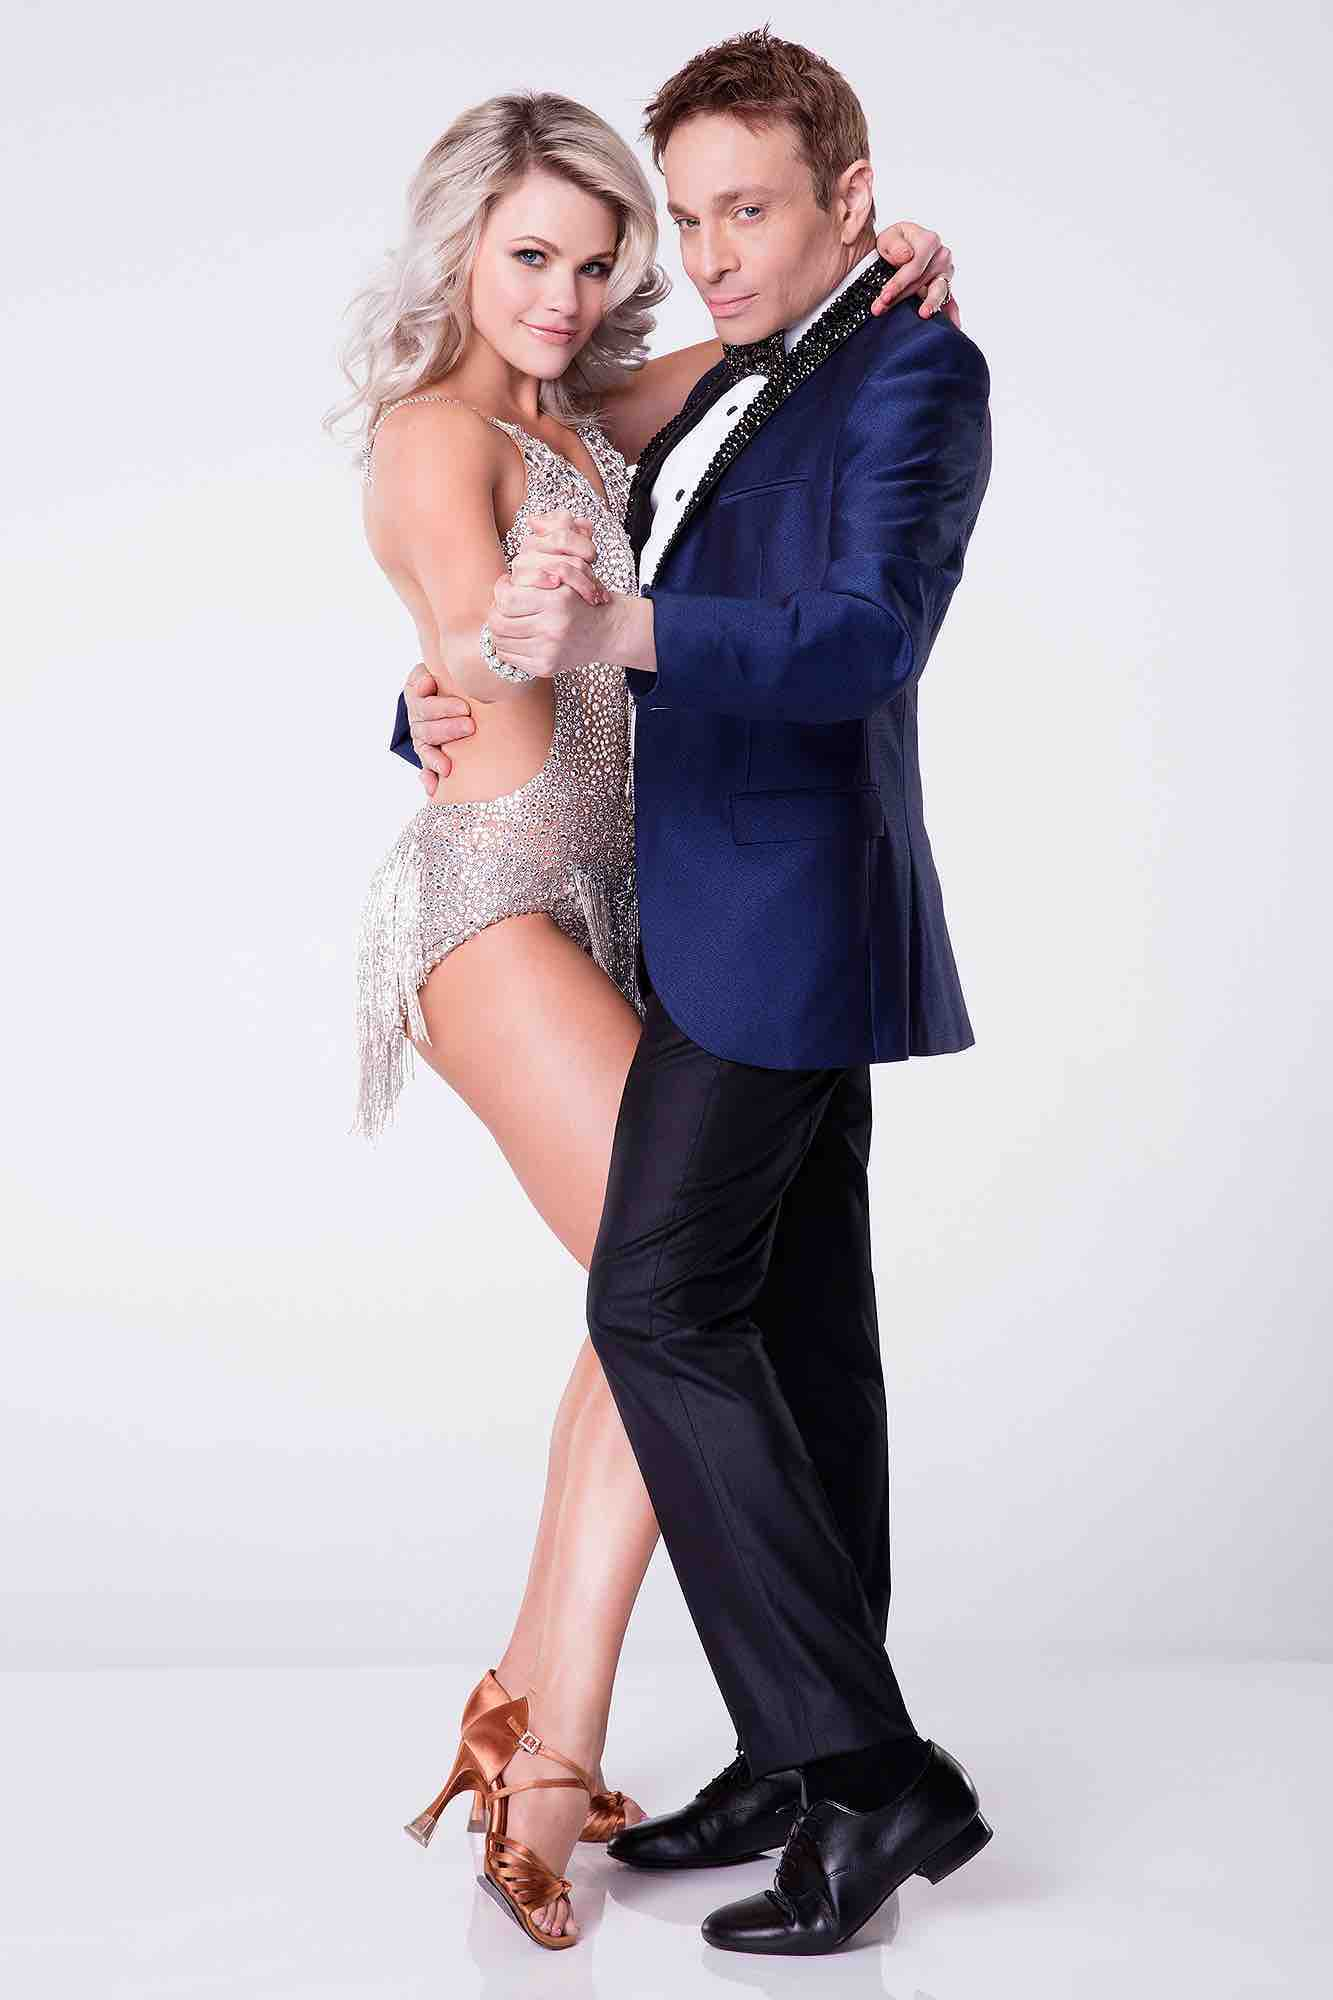 carson-kattan Dancing with thhe stars 2017